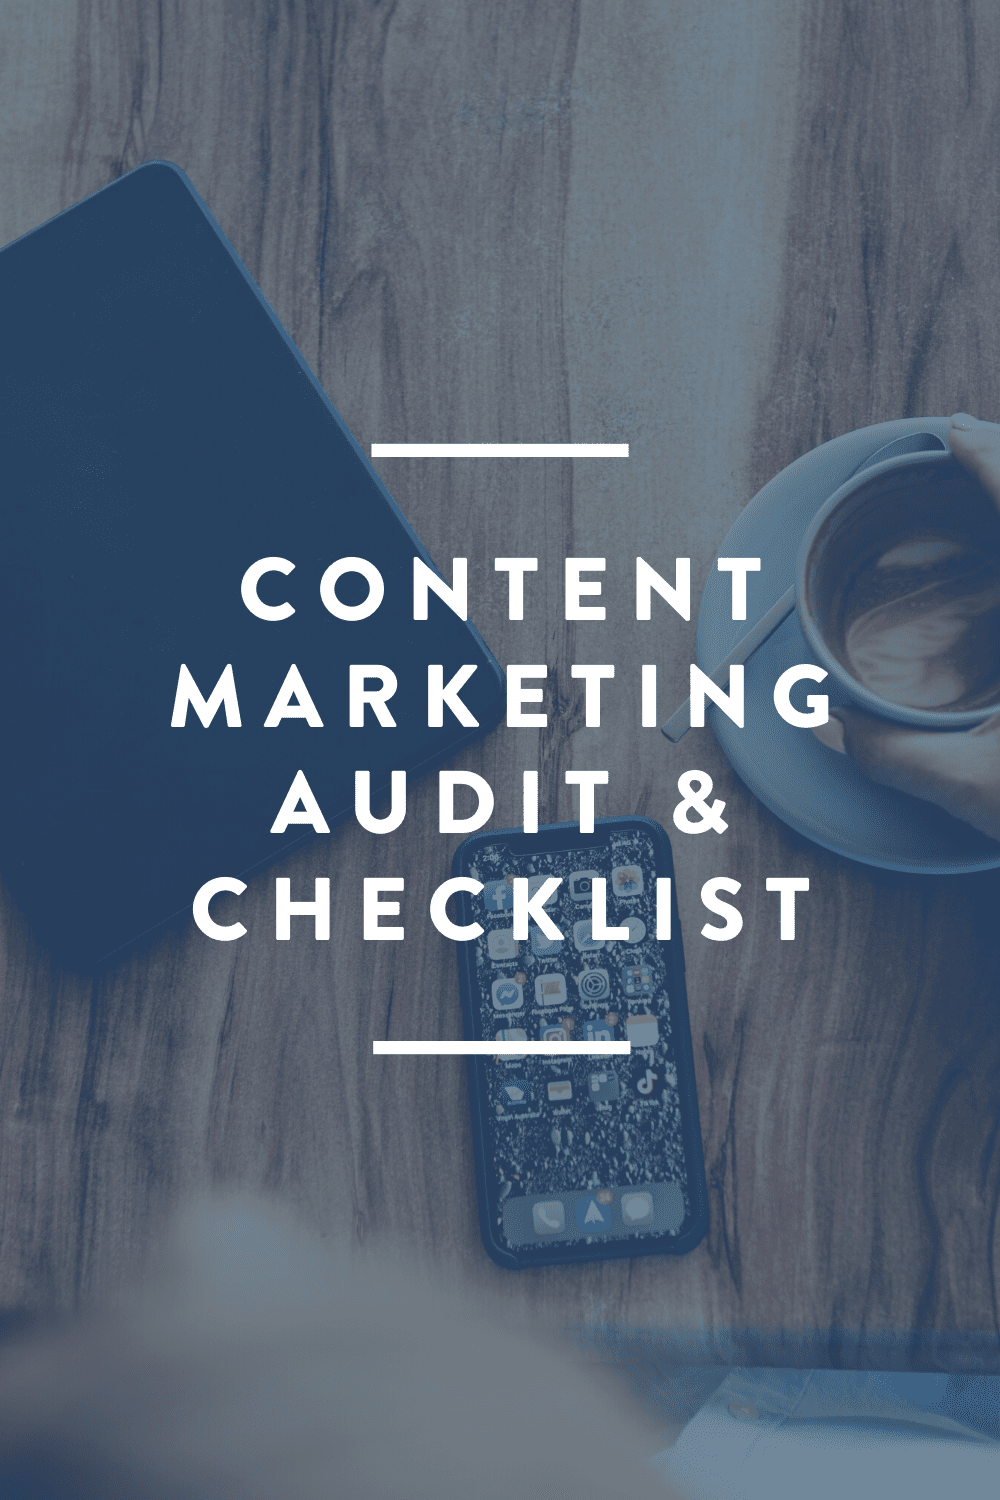 Content Marketing Checklist & Audit // DOWNLOAD